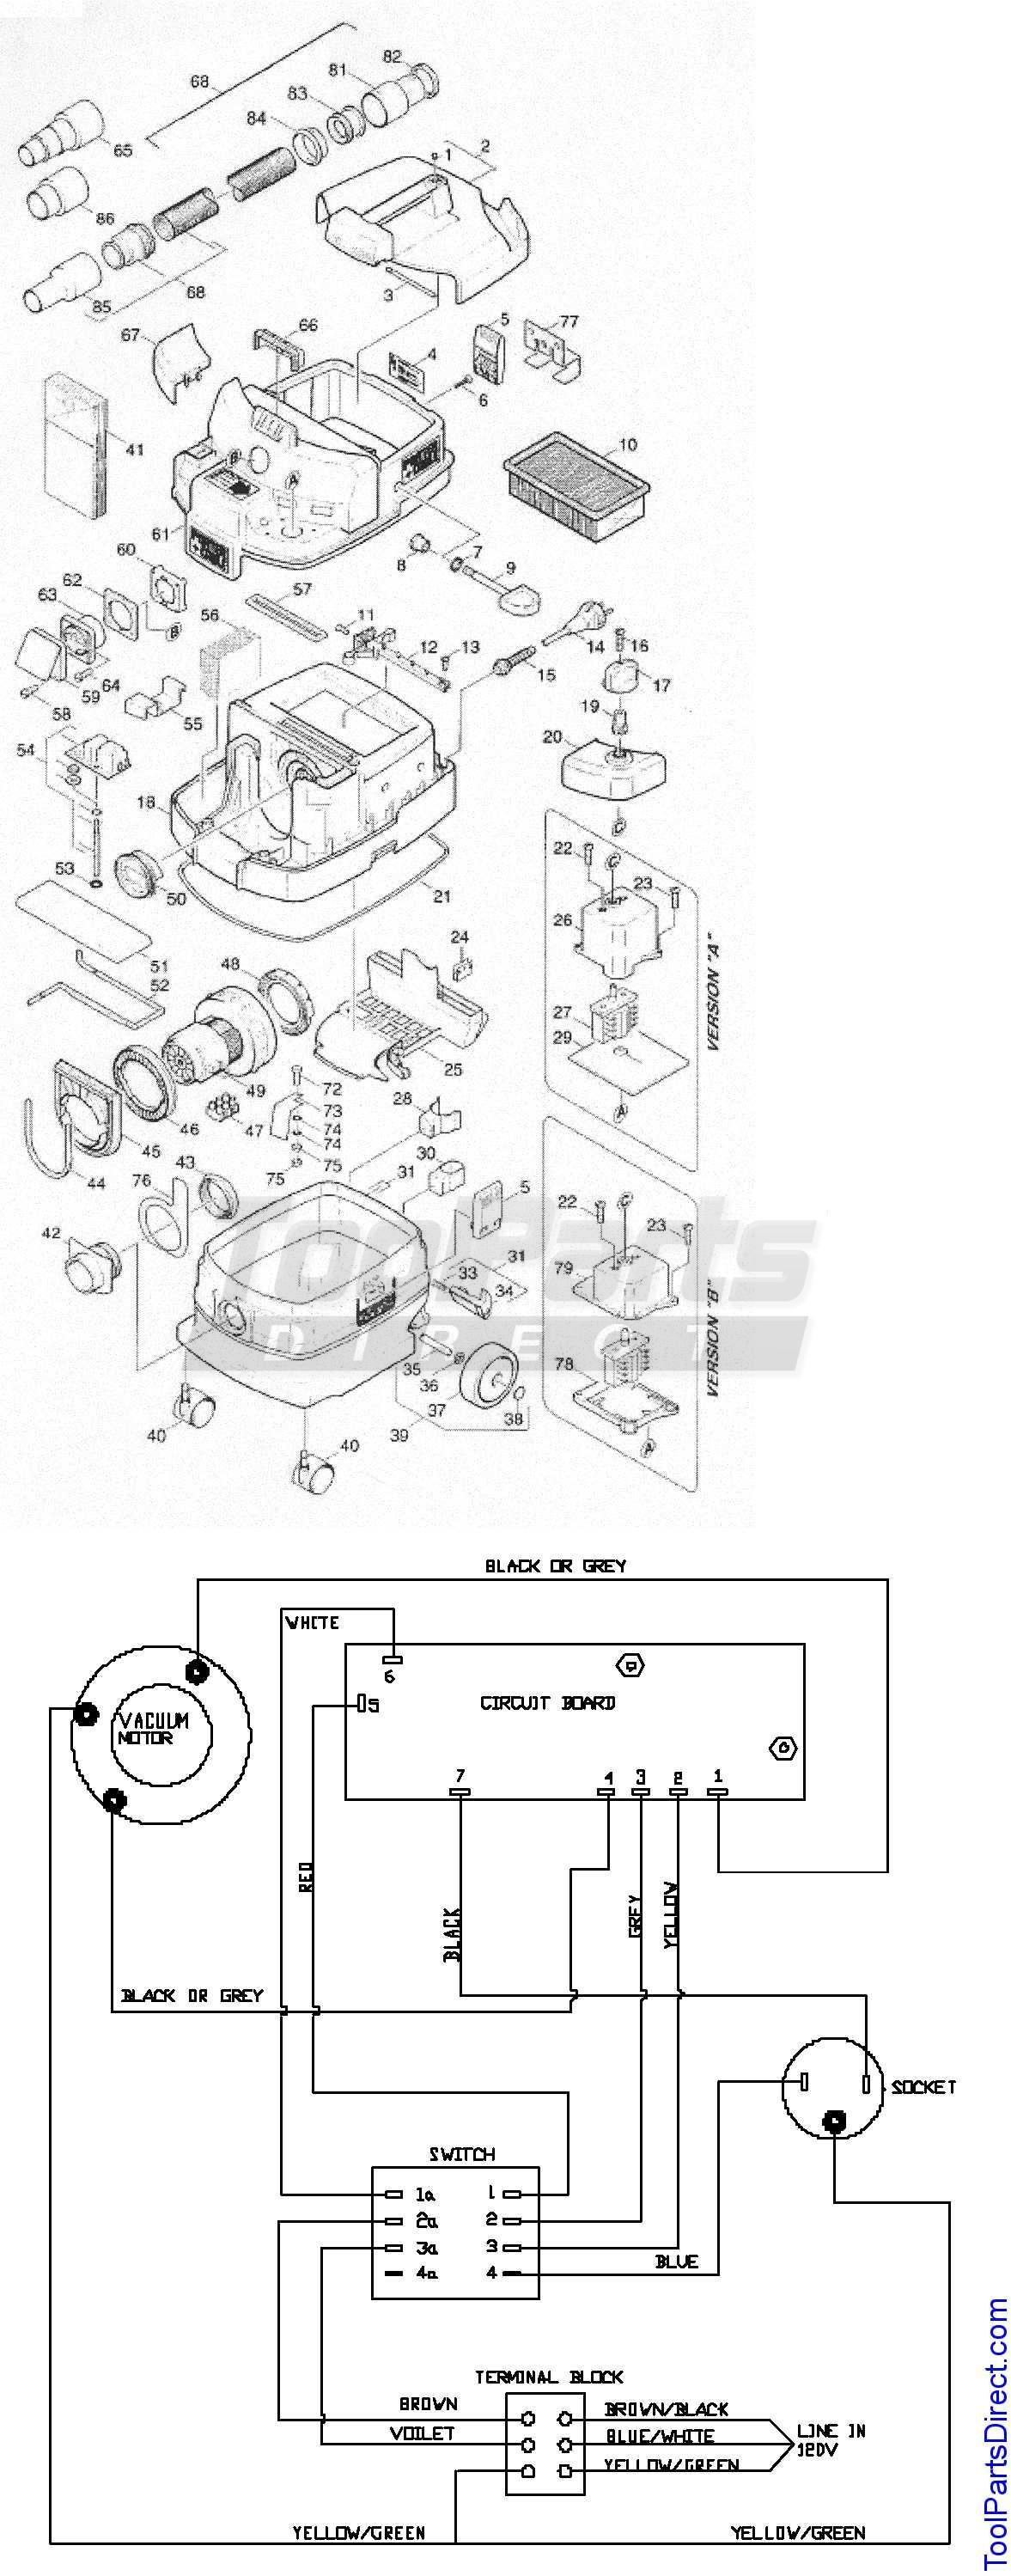 Shop Vac Wiring Diagram Trusted Schematics Rug Doctor Craftsman Somurich Com Brand Replacement Parts